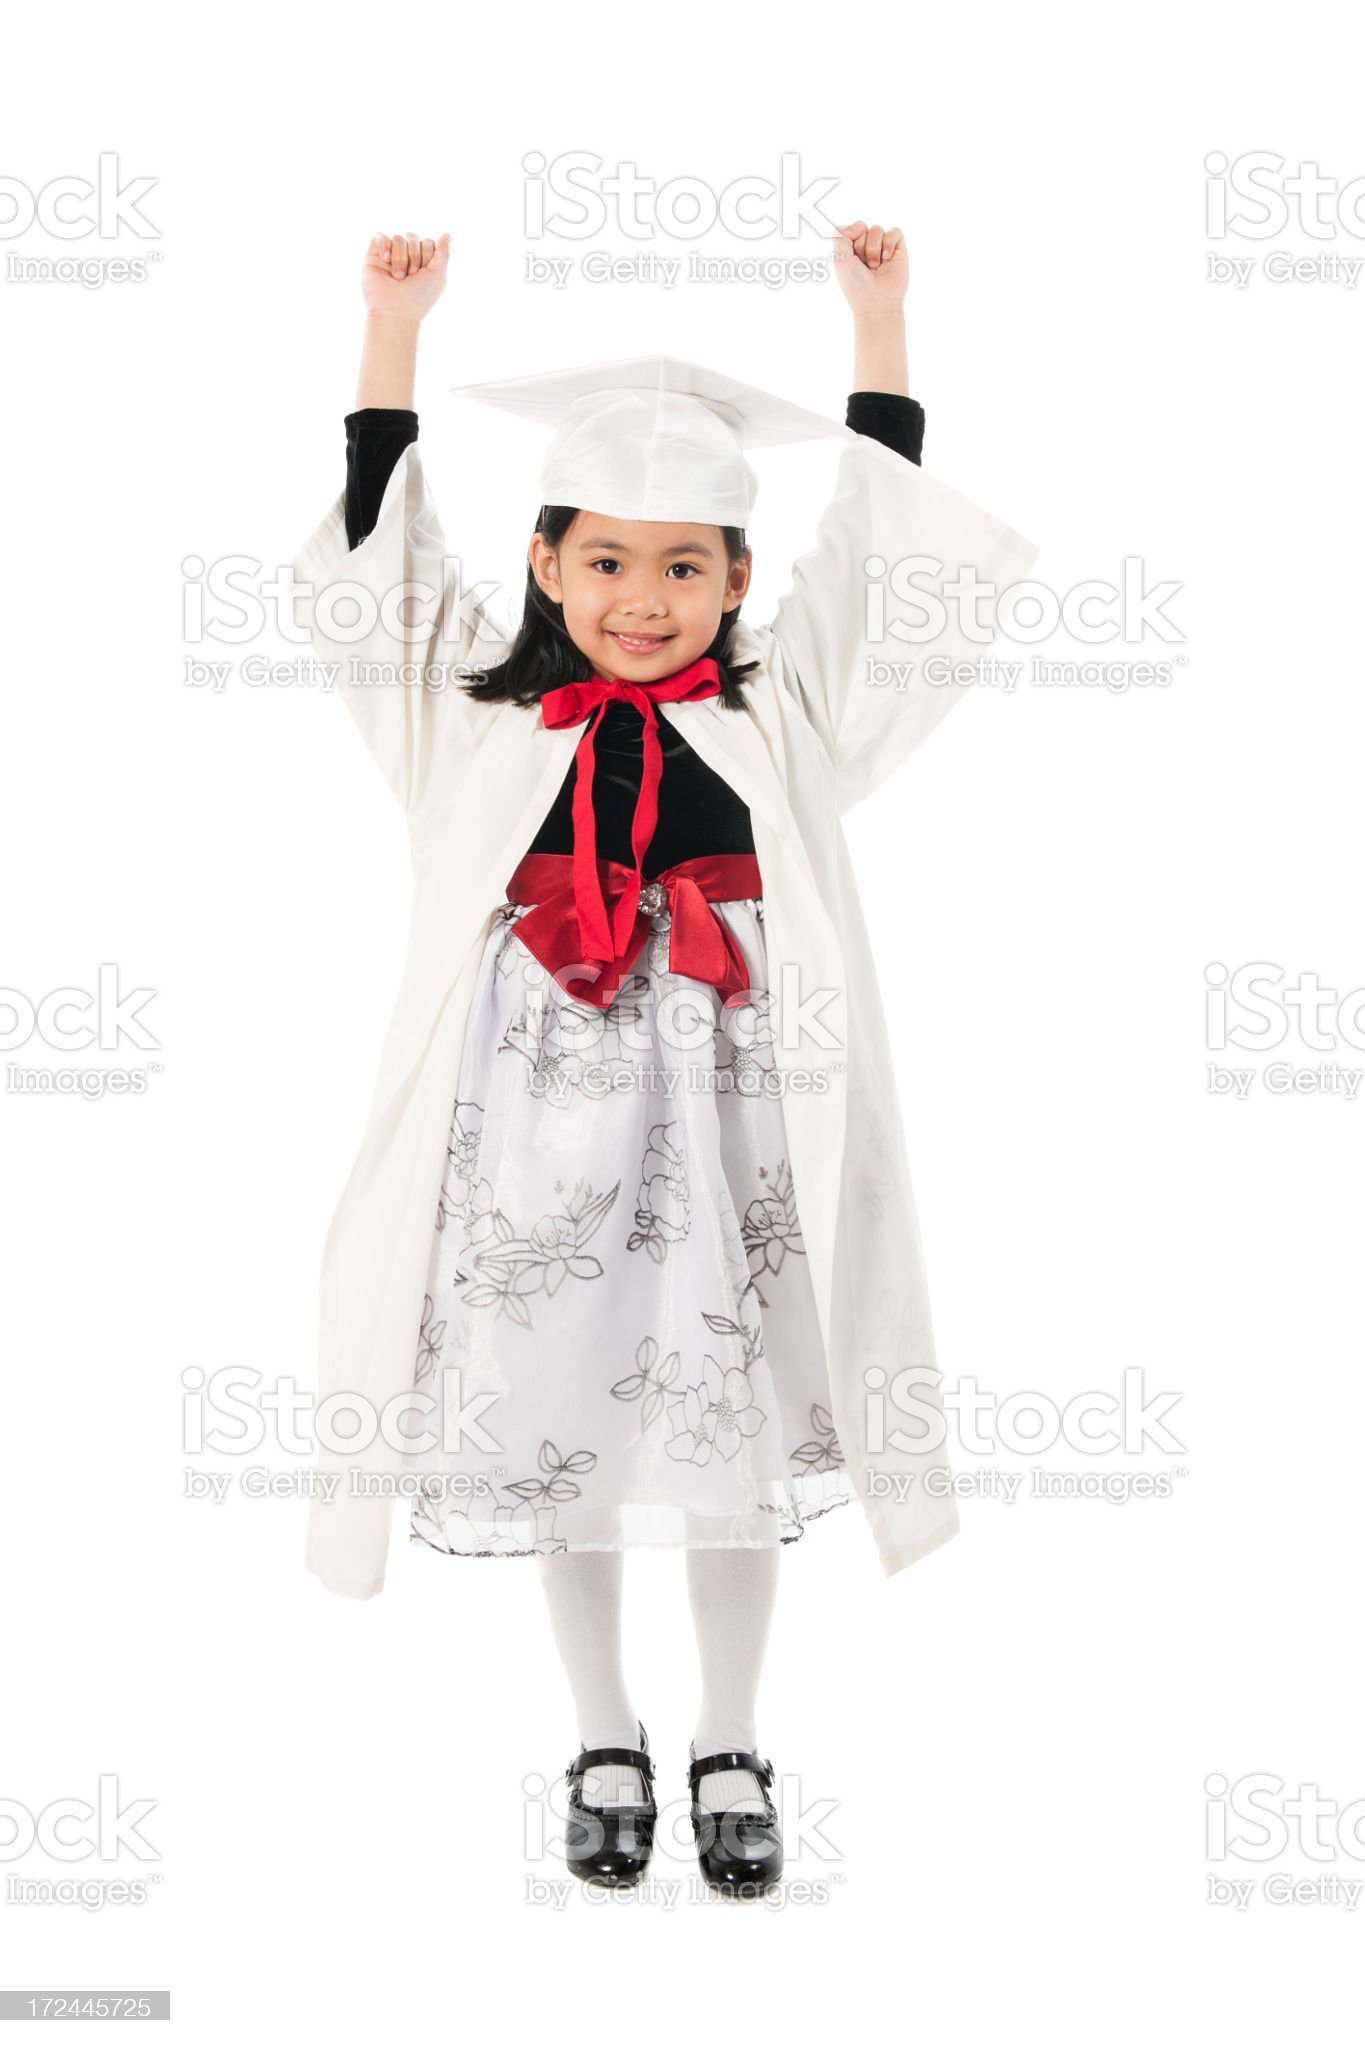 Kindergarten Graduate. royalty-free stock photo